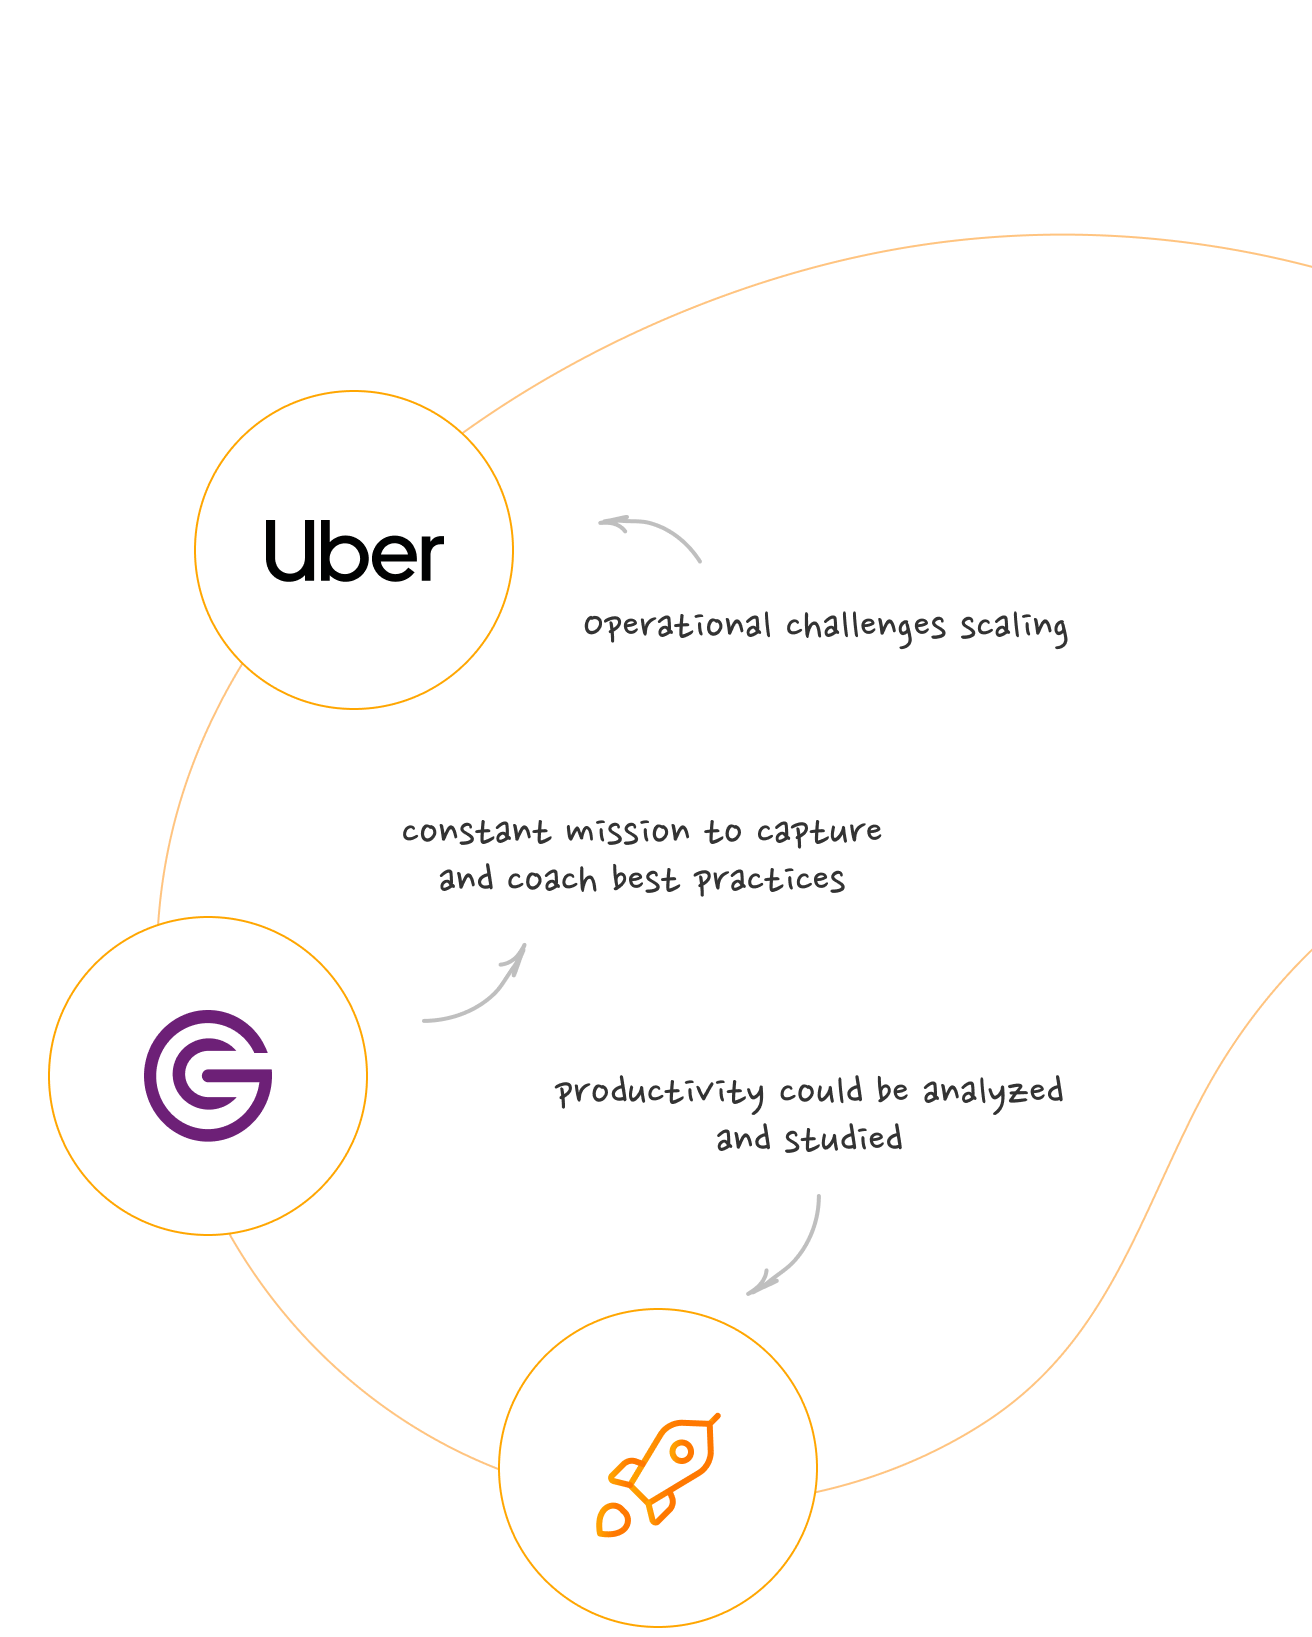 Uber Logo: operational challenges scaling General Catalyst Logo: constant mission to capture and coach best practices Rocket: productivity could be analyzed and studied